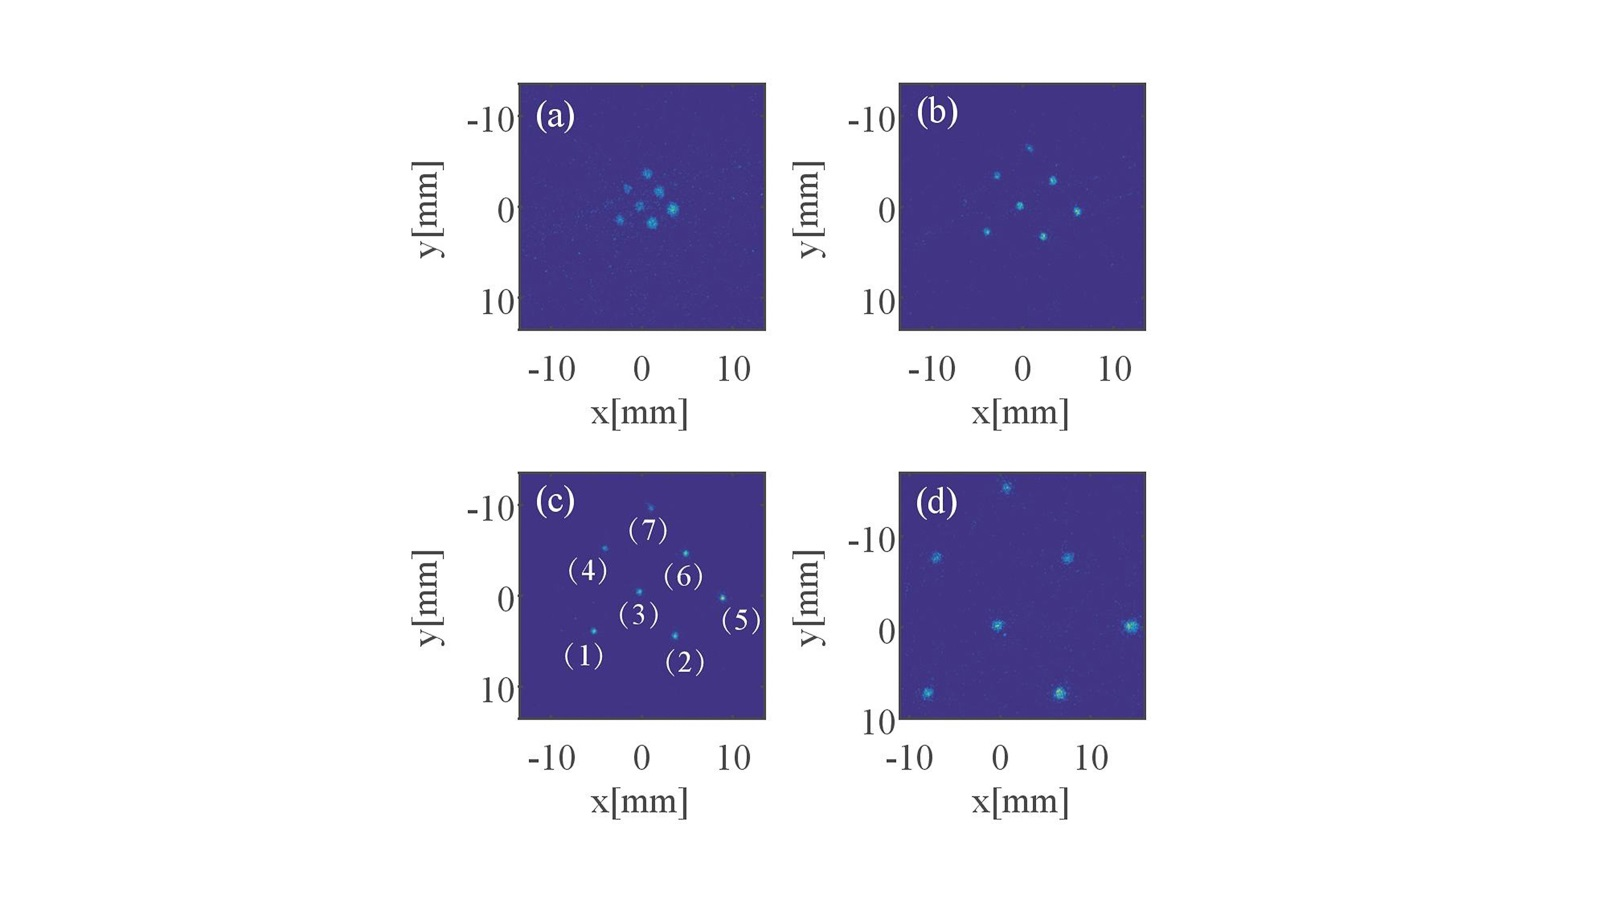 Beam images as a function of solenoid strength. (Image by Jiahang Shao / Argonne National Laboratory.)